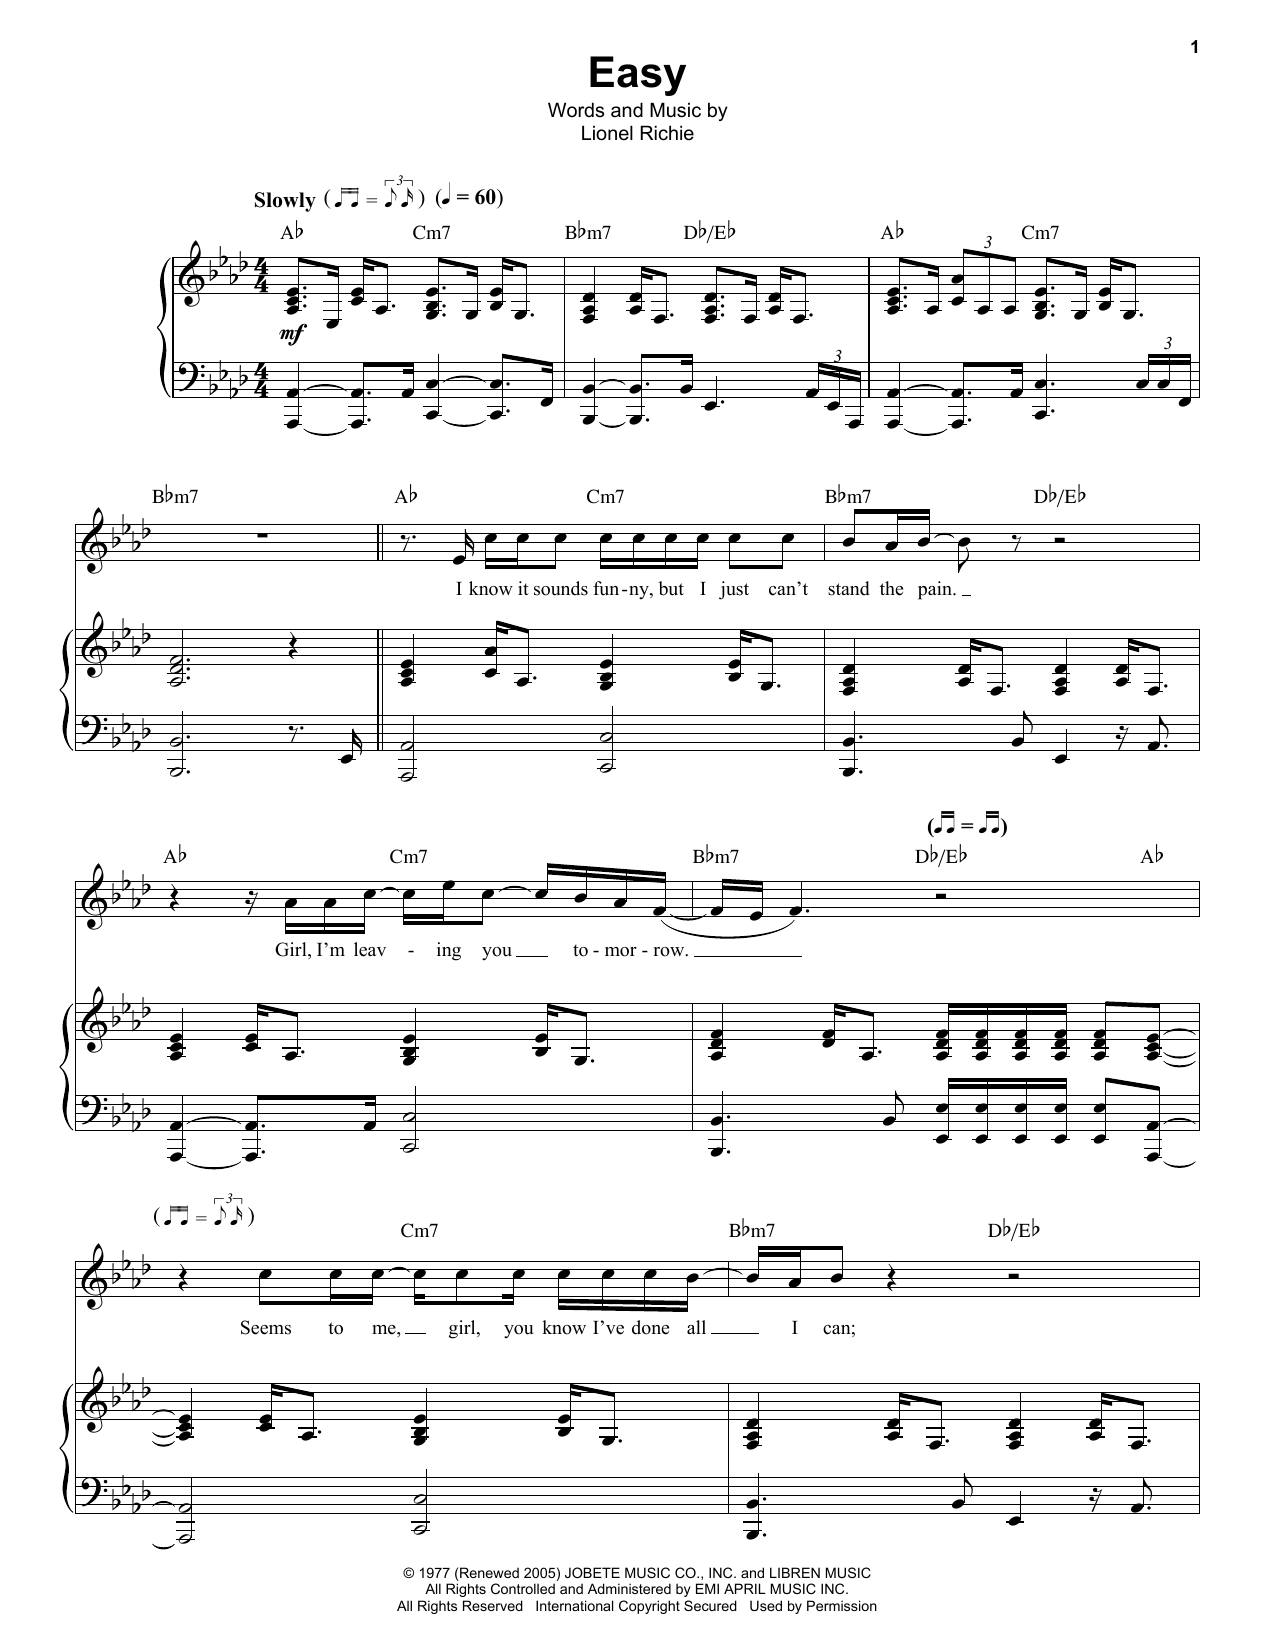 Queen We Are The Champions Piano Sheet Music Pdf Easy Piano Chords